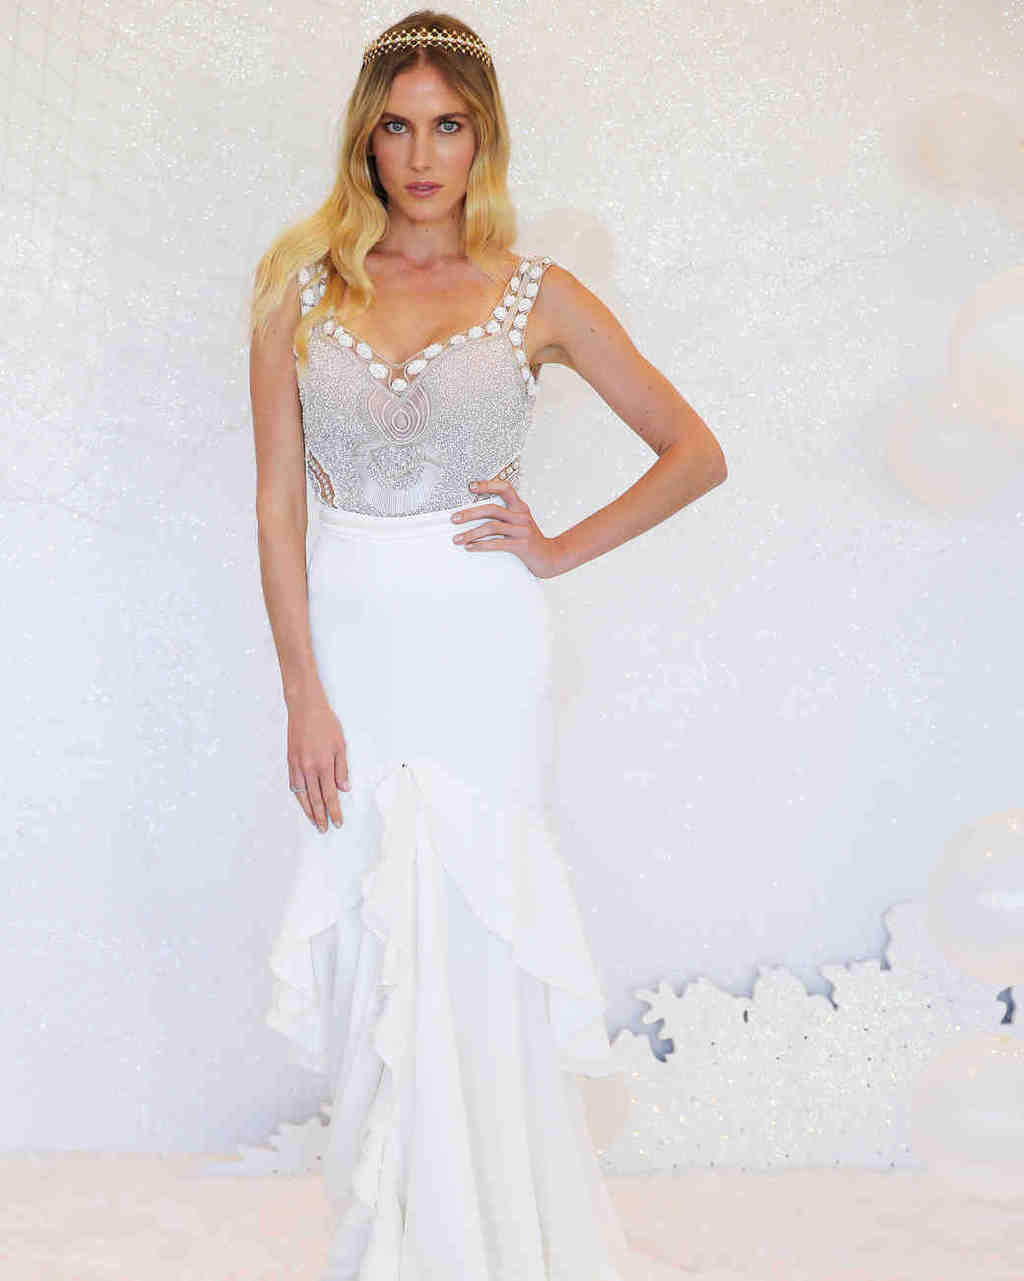 persy-wedding-dress-fall2017-6203351-002_vert